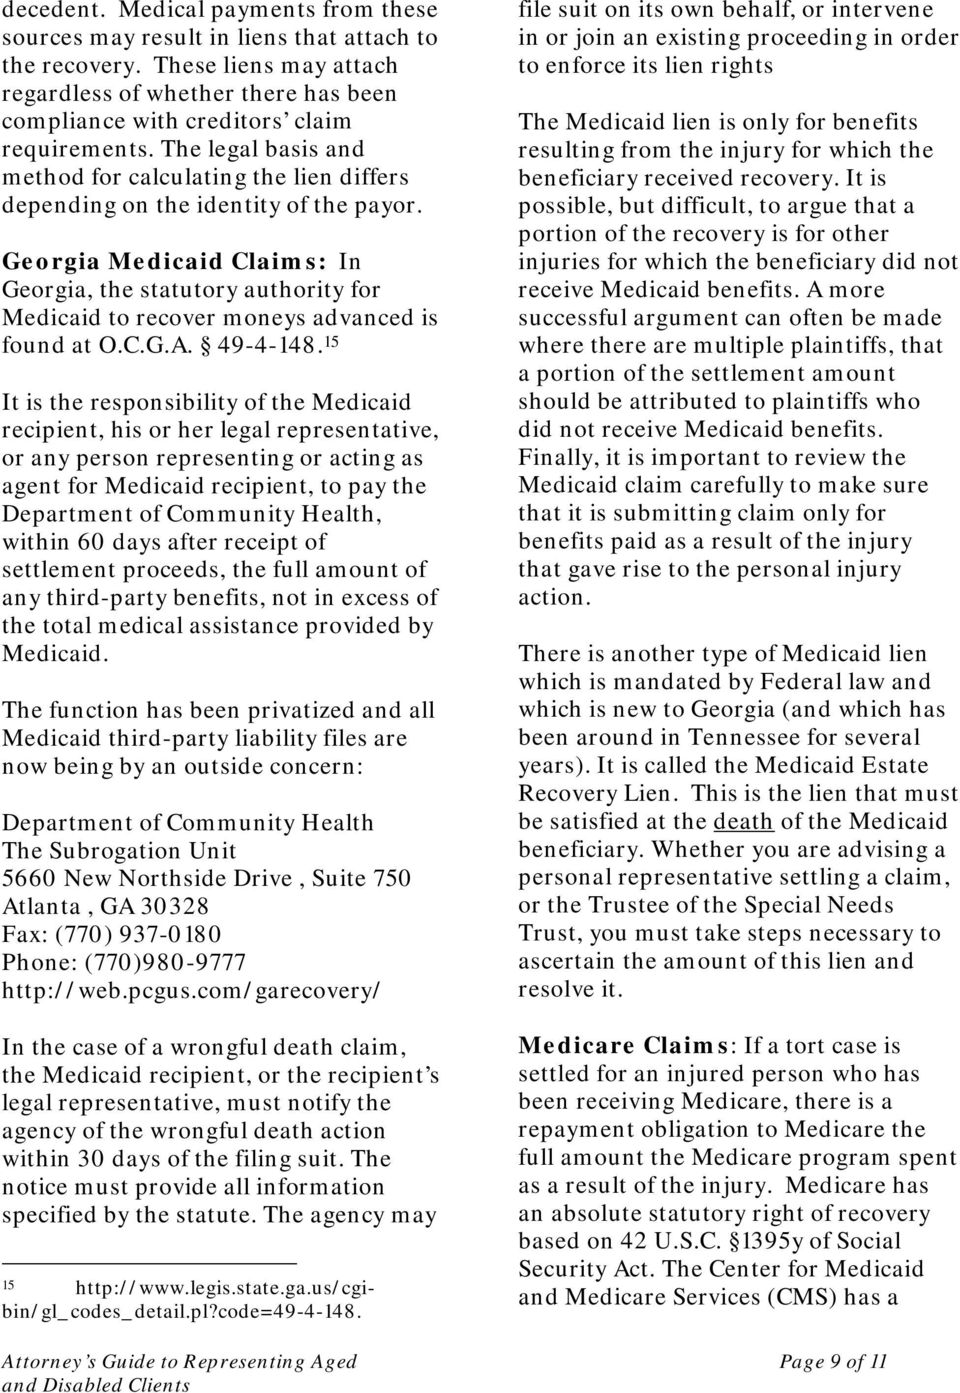 Georgia Medicaid Claims: In Georgia, the statutory authority for Medicaid to recover moneys advanced is found at O.C.G.A. 49-4-148.